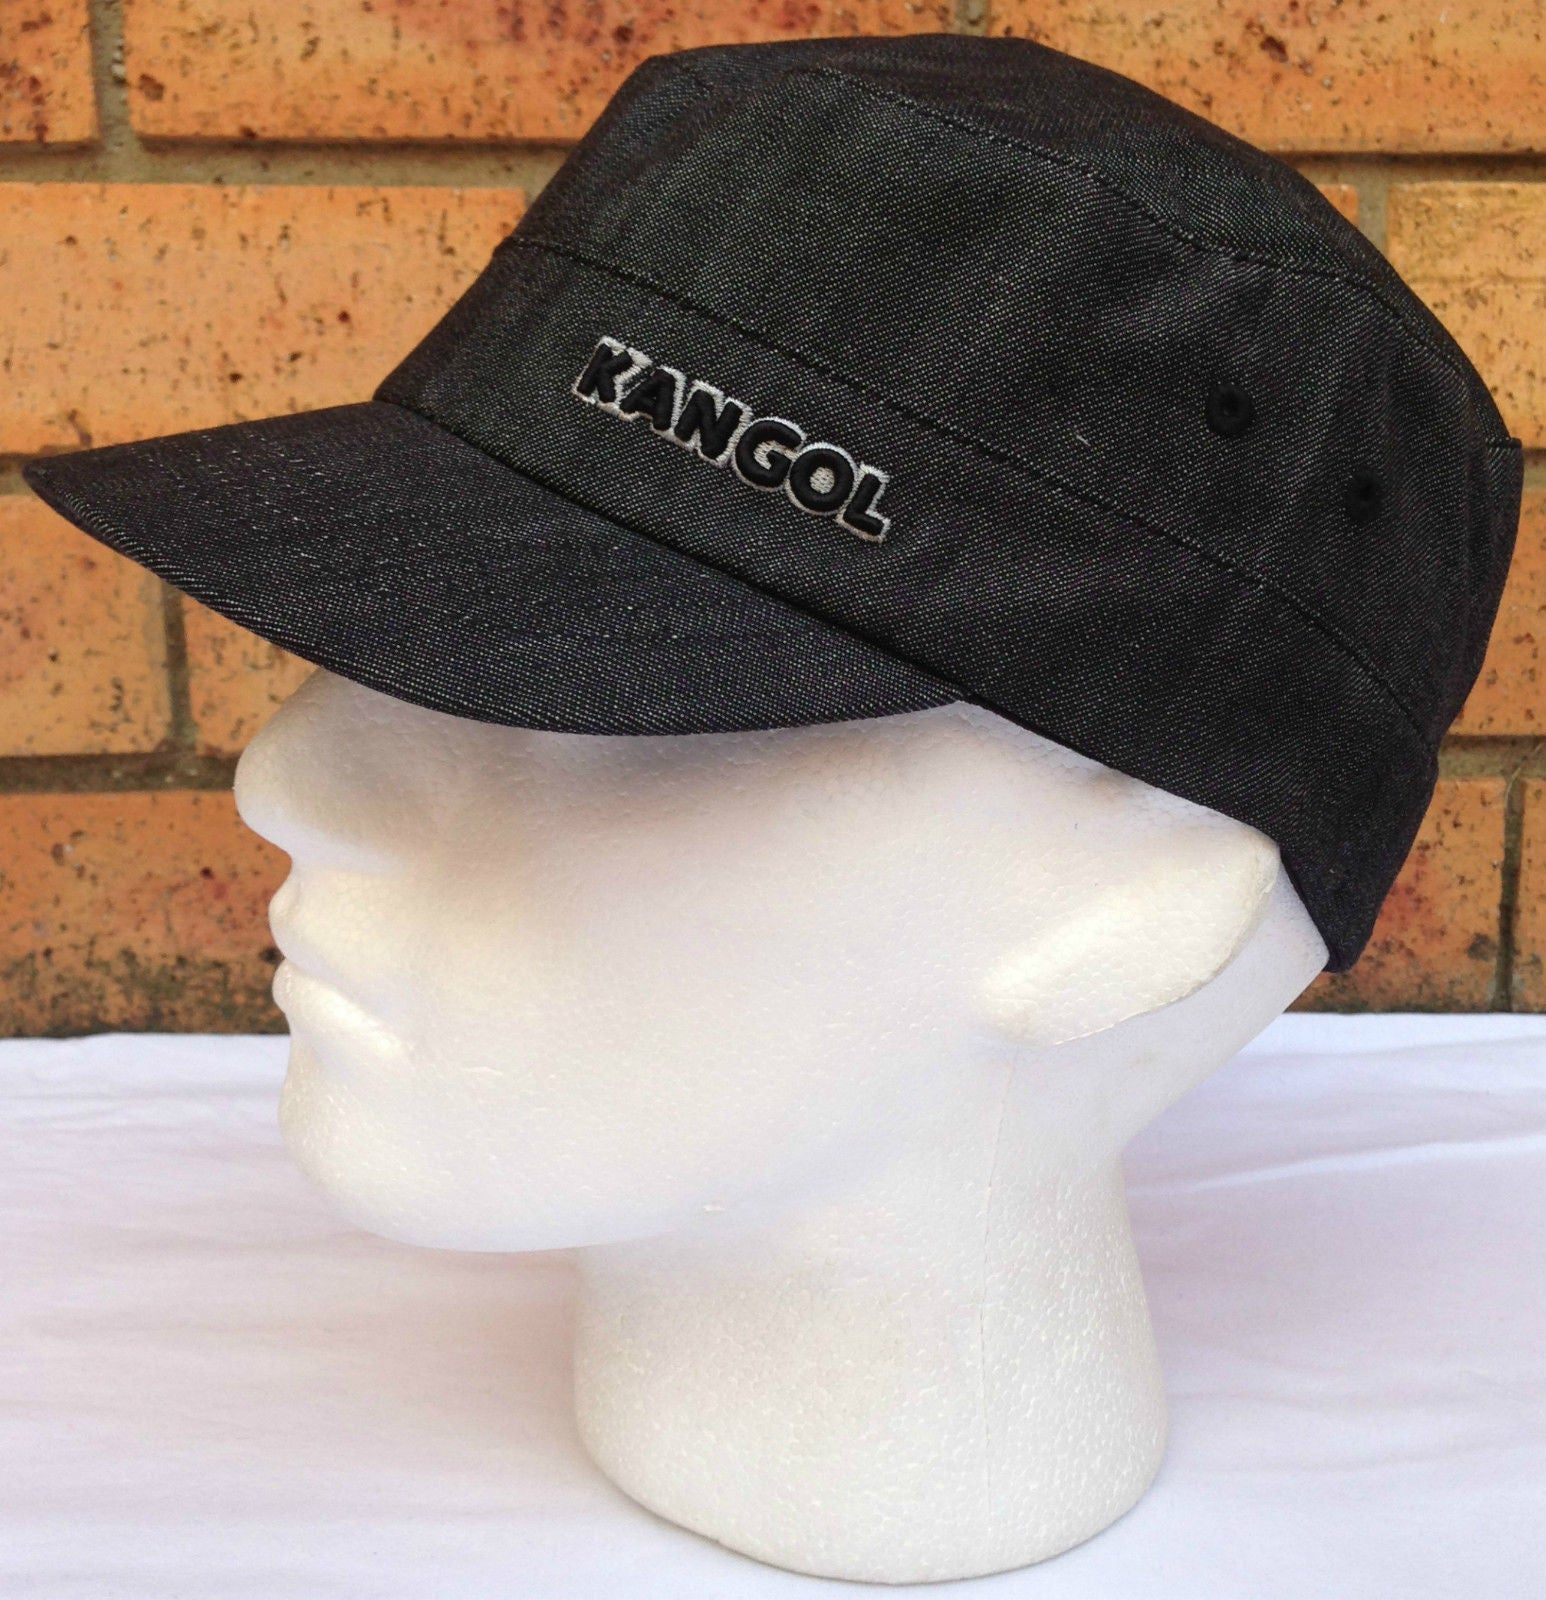 £ 45 Kangol Authentic Vintage Hardwear Indigo 507 Mens a Size Medium//Large RRP